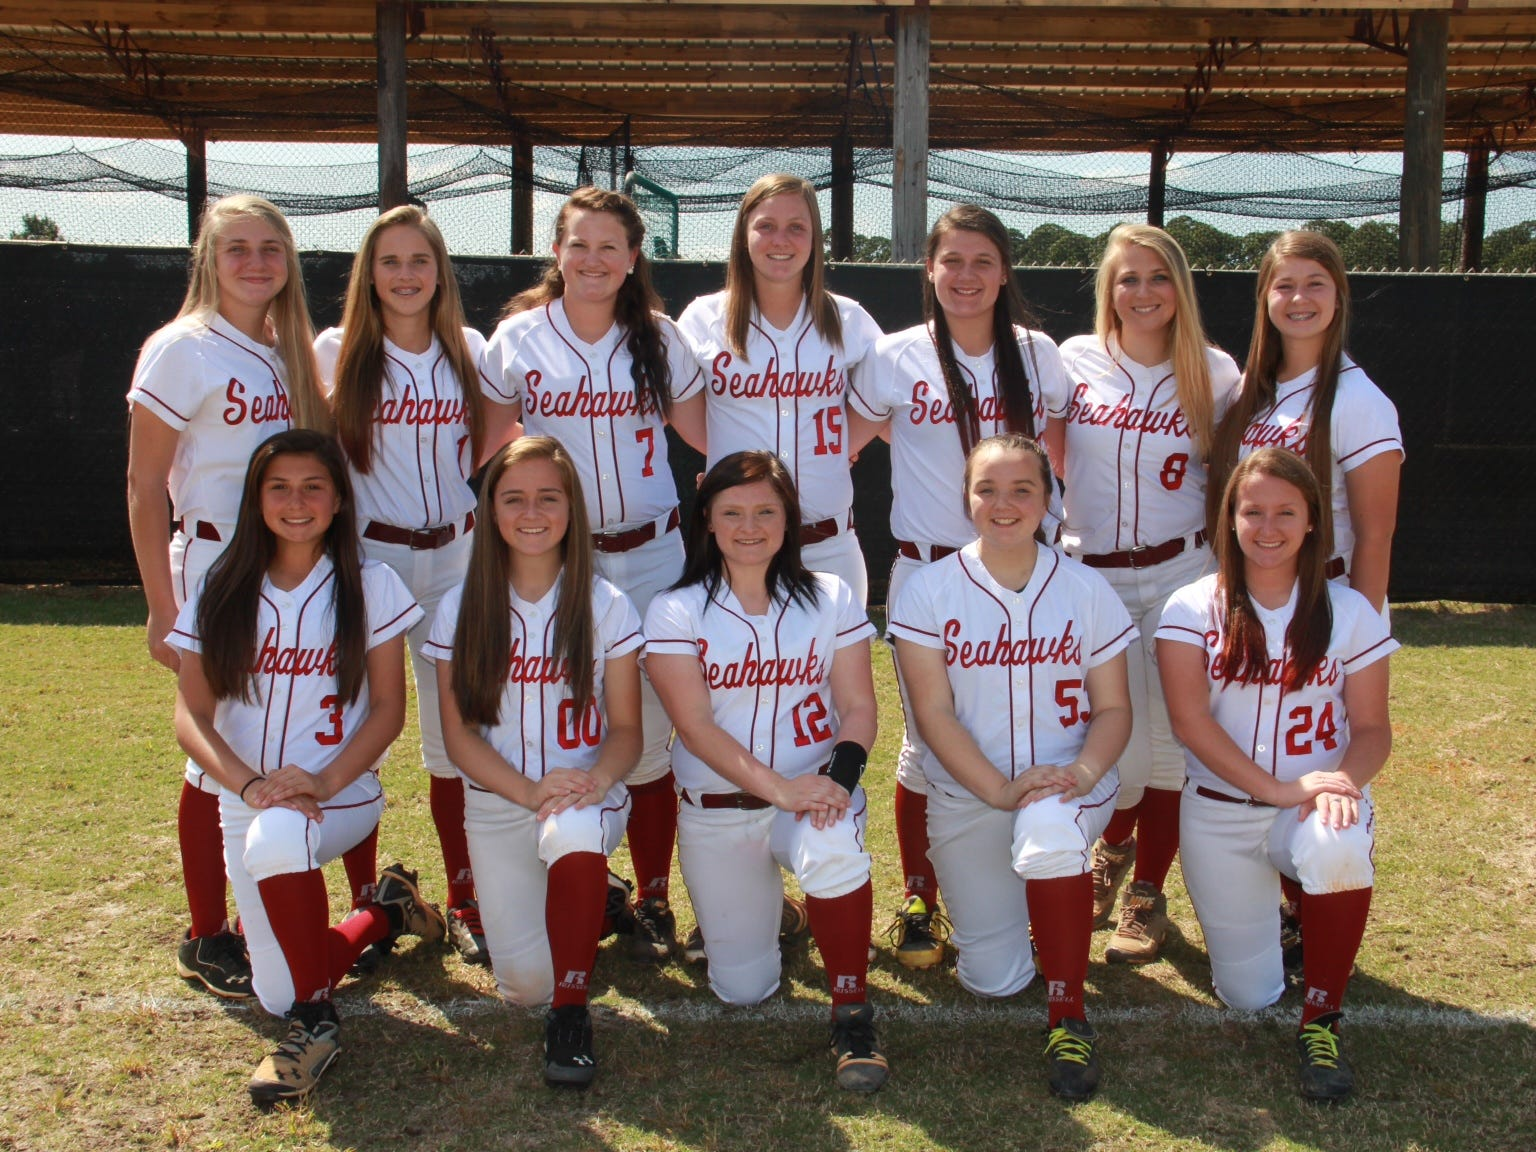 The Franklin County girls softball team is 16-10 on the season and has qualified for the regional playoffs for the first time in the school's brief eight-year history. Back row left to right: Melanie Collins, Adrianna Butler, Myranda Mcleod, Calli Westbrook, Scout Segree, Megan Collins, Allie Kirvin. Front row left to right: Alexus Johnson, Madison Smith, Vanessa Simmons, Jaylin Charles, Maddie Newell. Michaela Cassidy (not pictured).